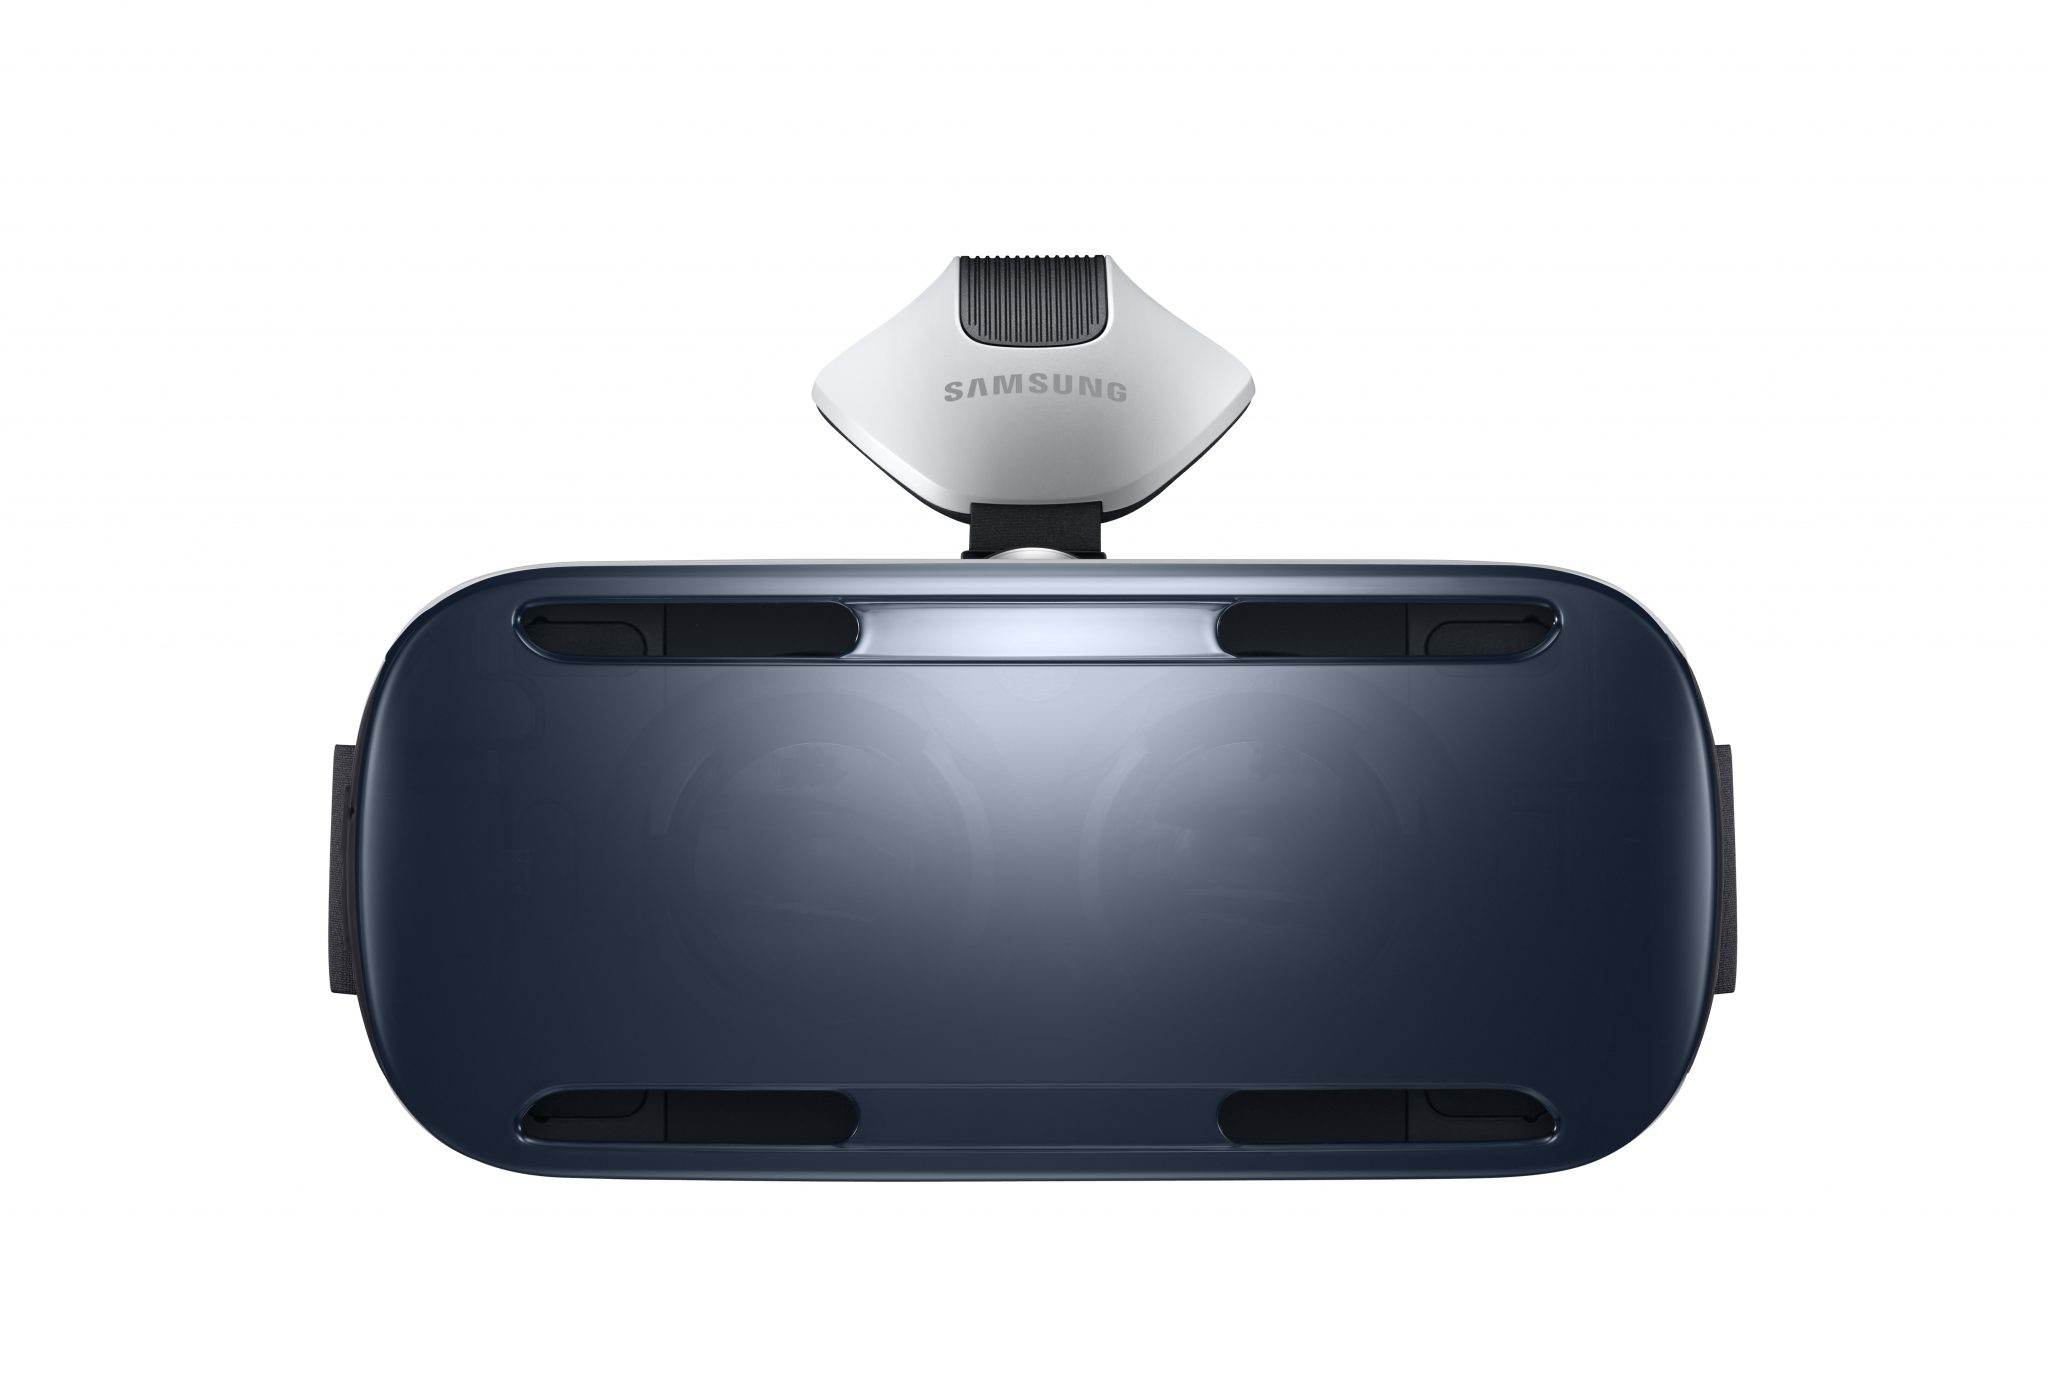 GearVR AndroDollar 1 - Samsung Unveils the Gear VR Headset; A Virtual Reality Accessory For The Galaxy Note 4